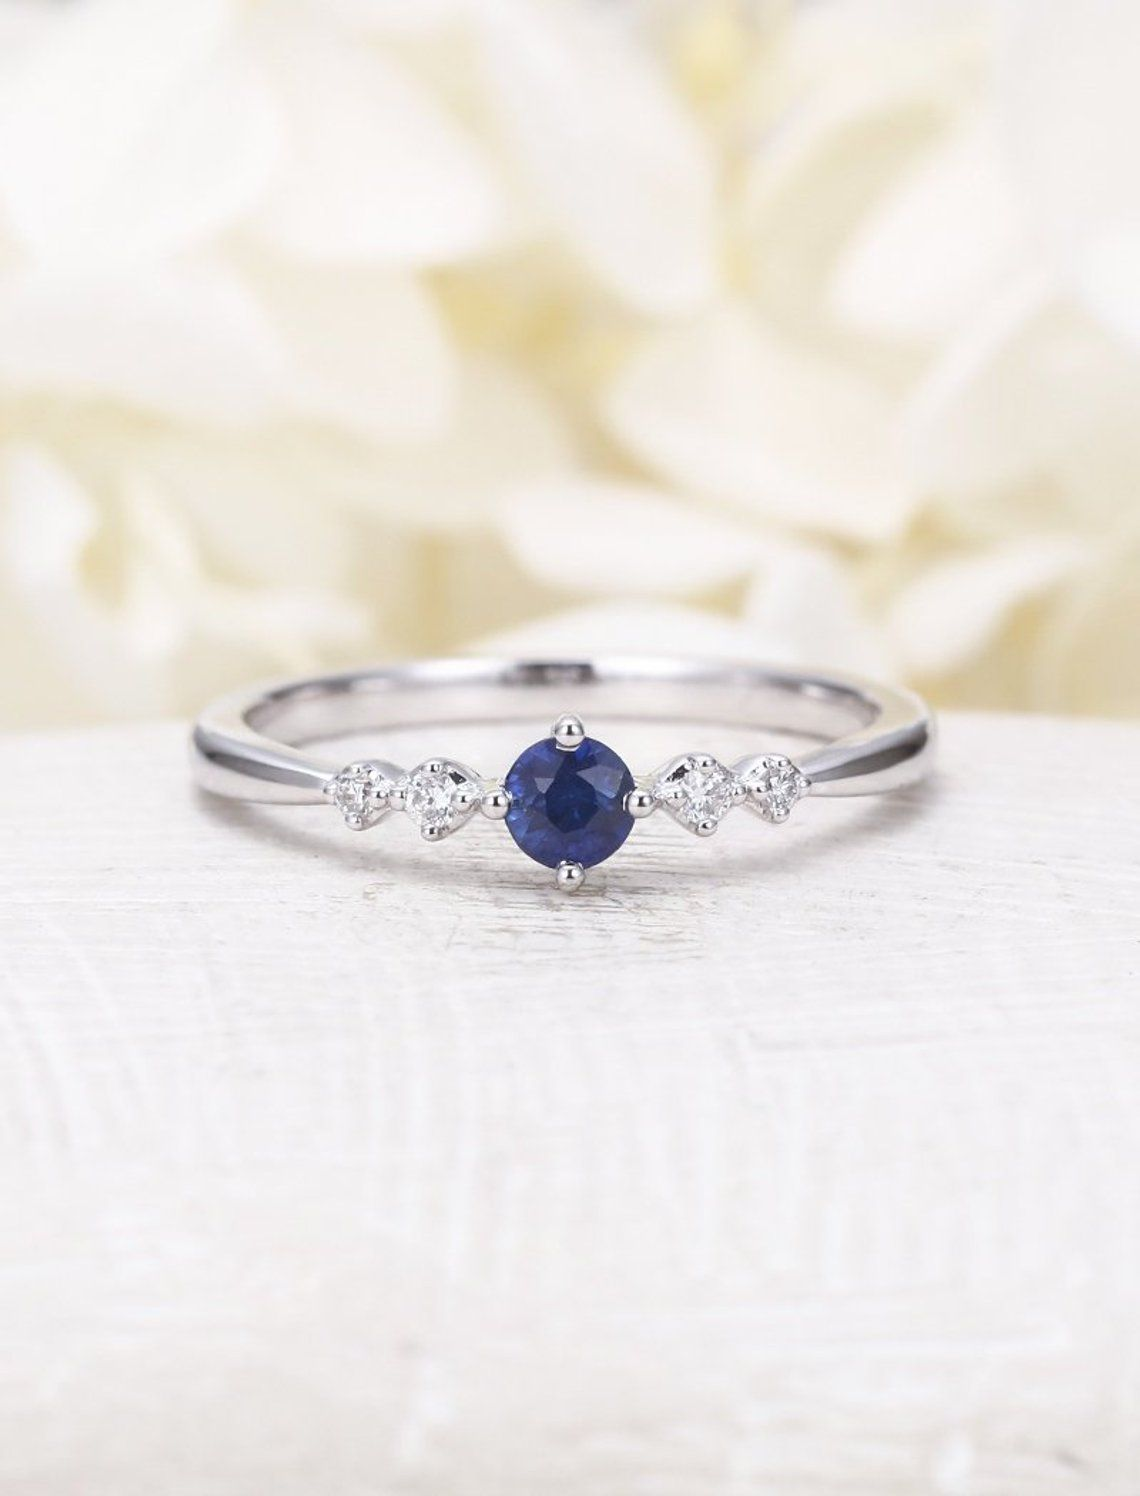 Engagement Ring Sapphire Ring Promise Ring Anniversary Ring lab Solitaire Ring Delicate Sapphire Heart Ring